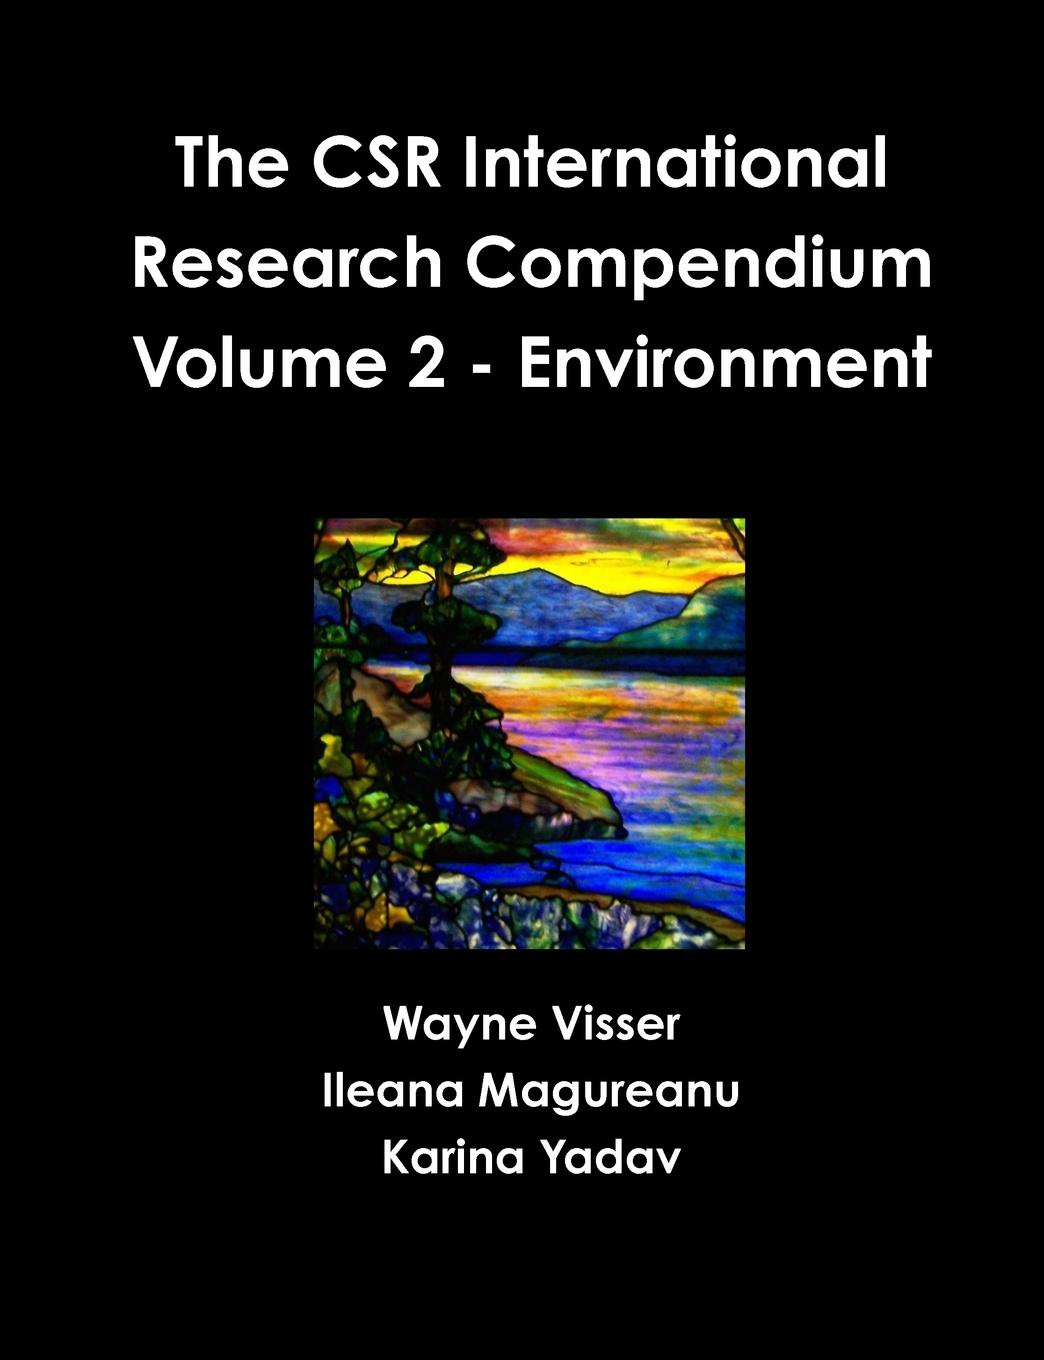 Wayne Visser, Ileana Magureanu, Karina Yadav The CSR International Research Compendium. Volume 2 - Environment dominic diston j computational modelling and simulation of aircraft and the environment volume 1 platform kinematics and synthetic environment